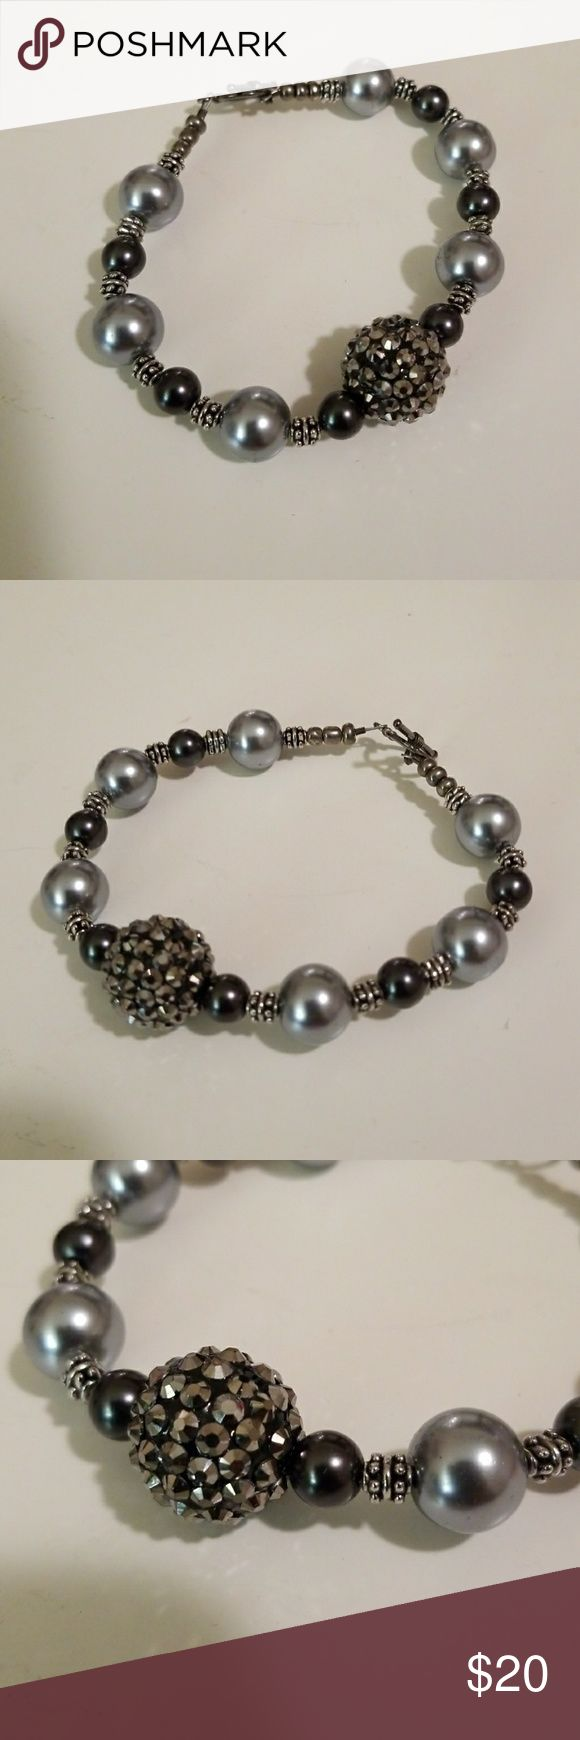 """Handmade Bracelet Black, silver tone and gray handmade bracelet, silver tone toggle, large bling bead.  Approx. 9"""" perfect for us plus size women. 😁 Jewelry Bracelets"""